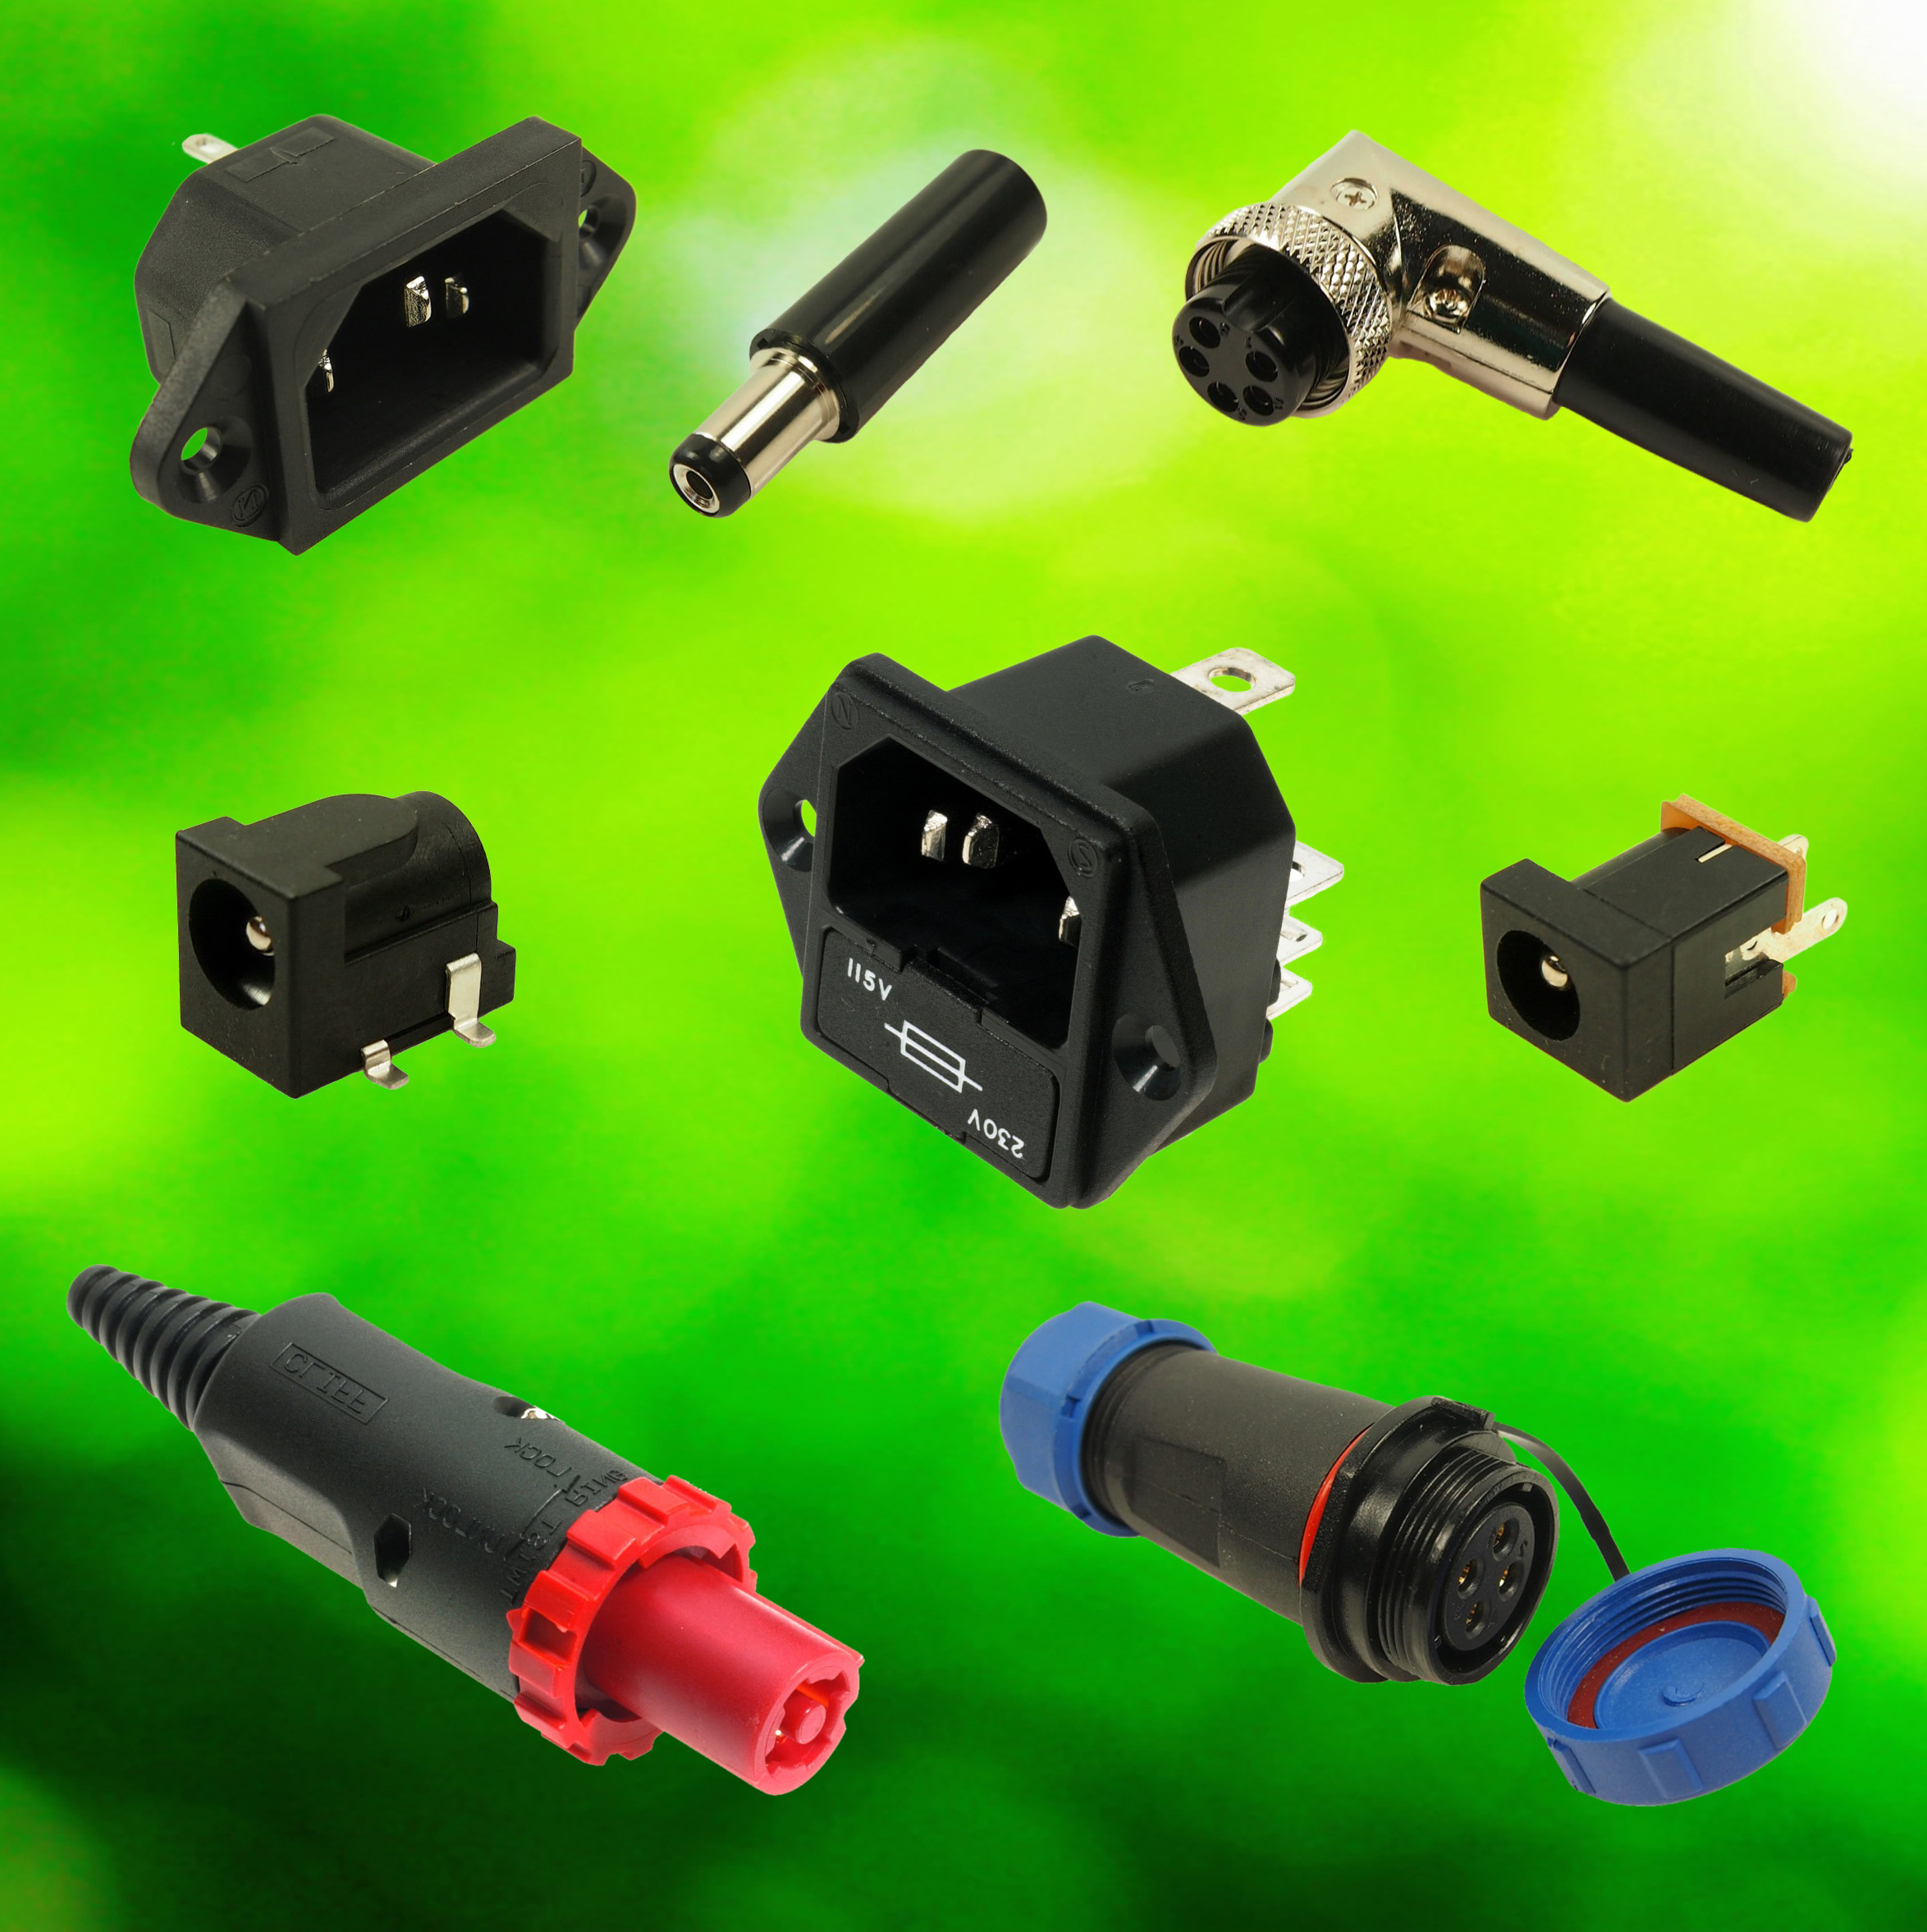 CLIFF Electronic Components Cordsets